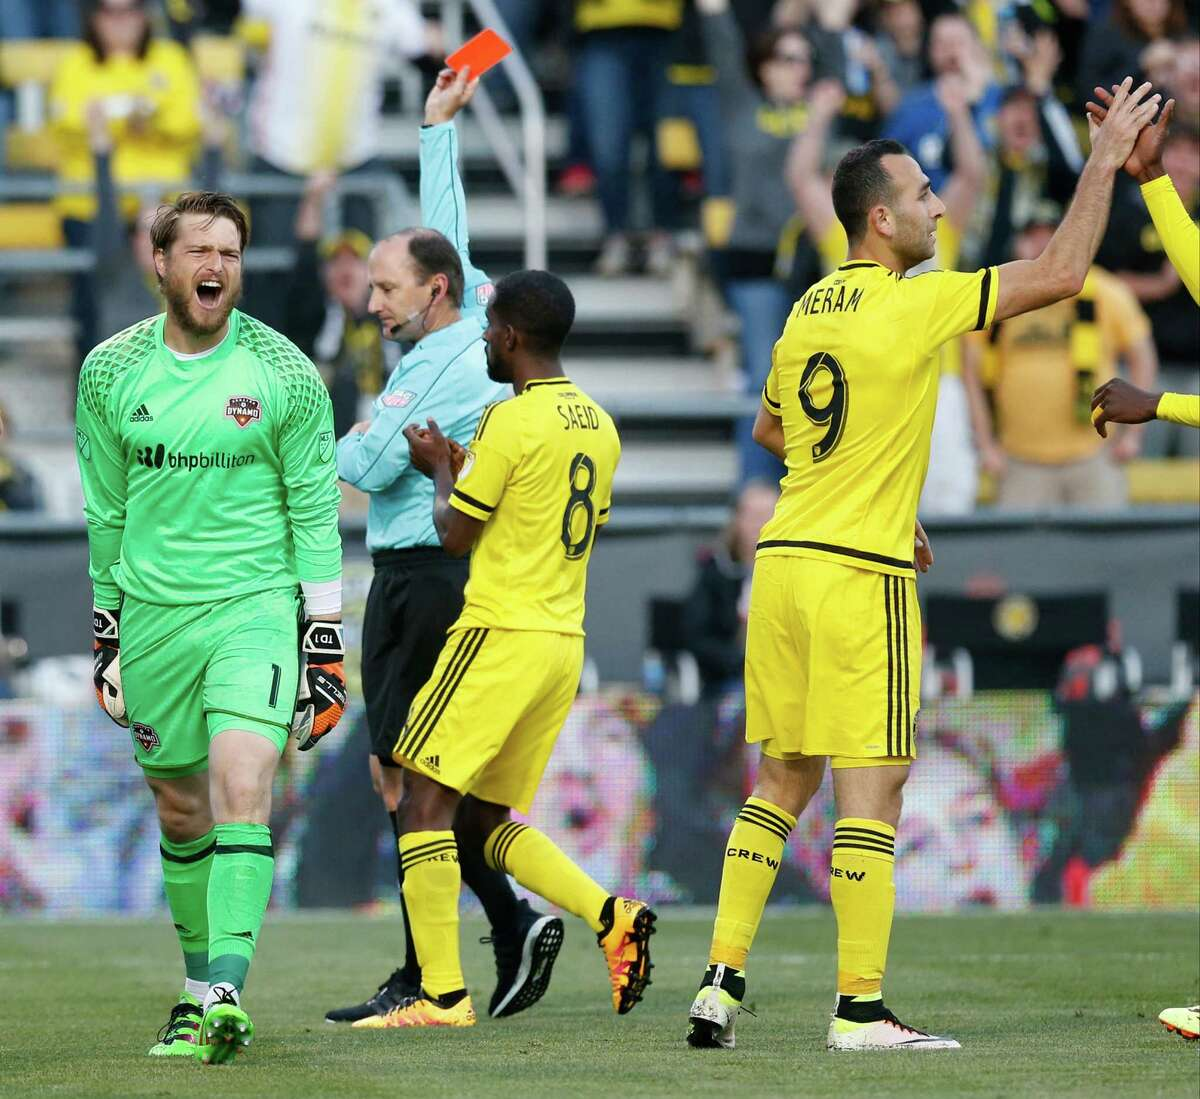 Houston Dynamo goalkeeper Tyler Deric (1) reacts after receiving a red card for an infraction against the Columbus Crew at Mapfre Stadium in Columbus, Ohio, on Saturday, April 23, 2016. (Barbara J. Perenic/Columbus Dispatch/TNS)